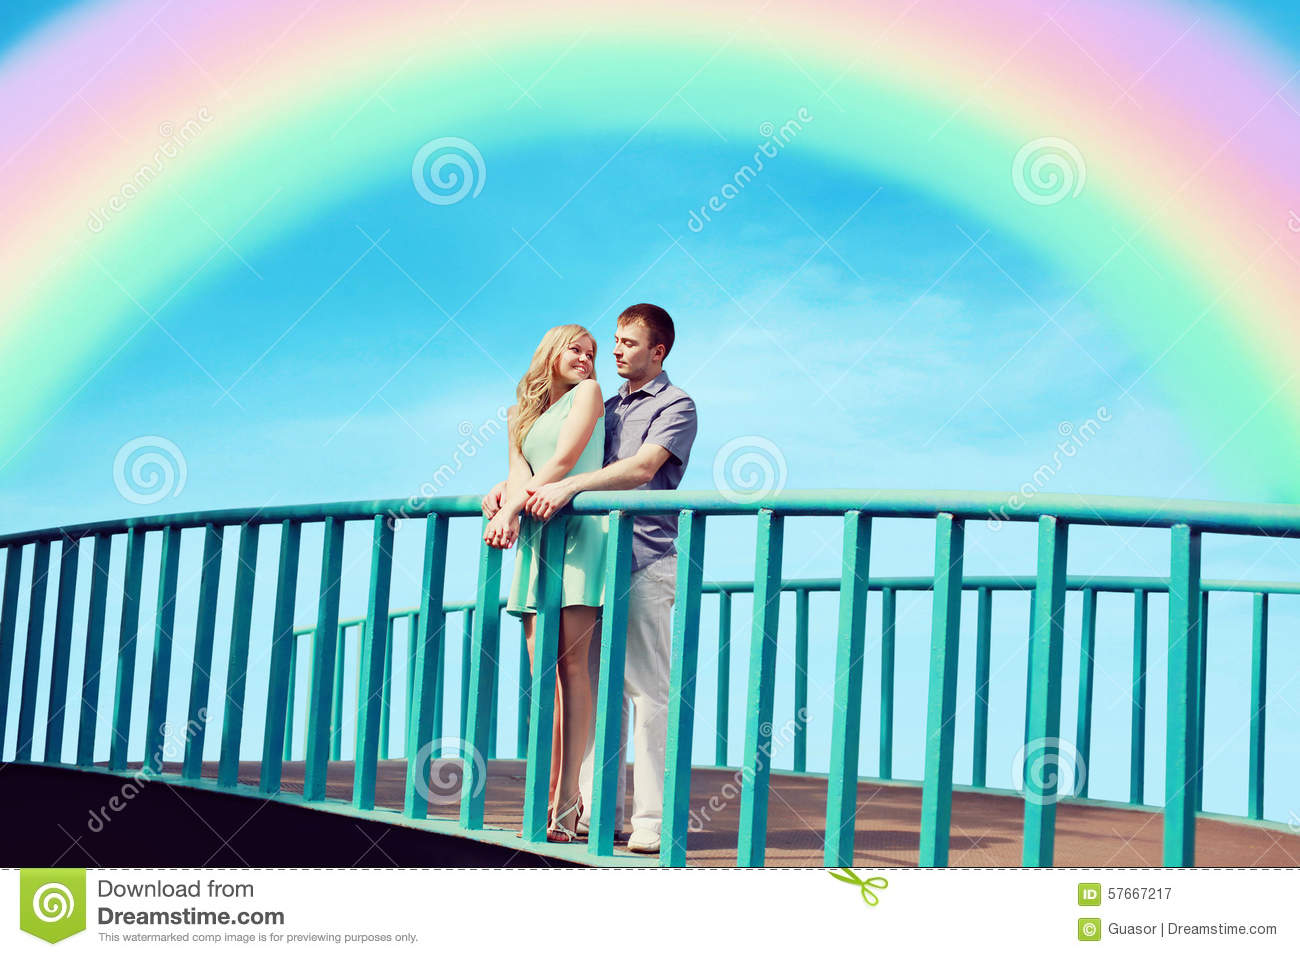 Beautiful young couple in love on the bridge over blue sky